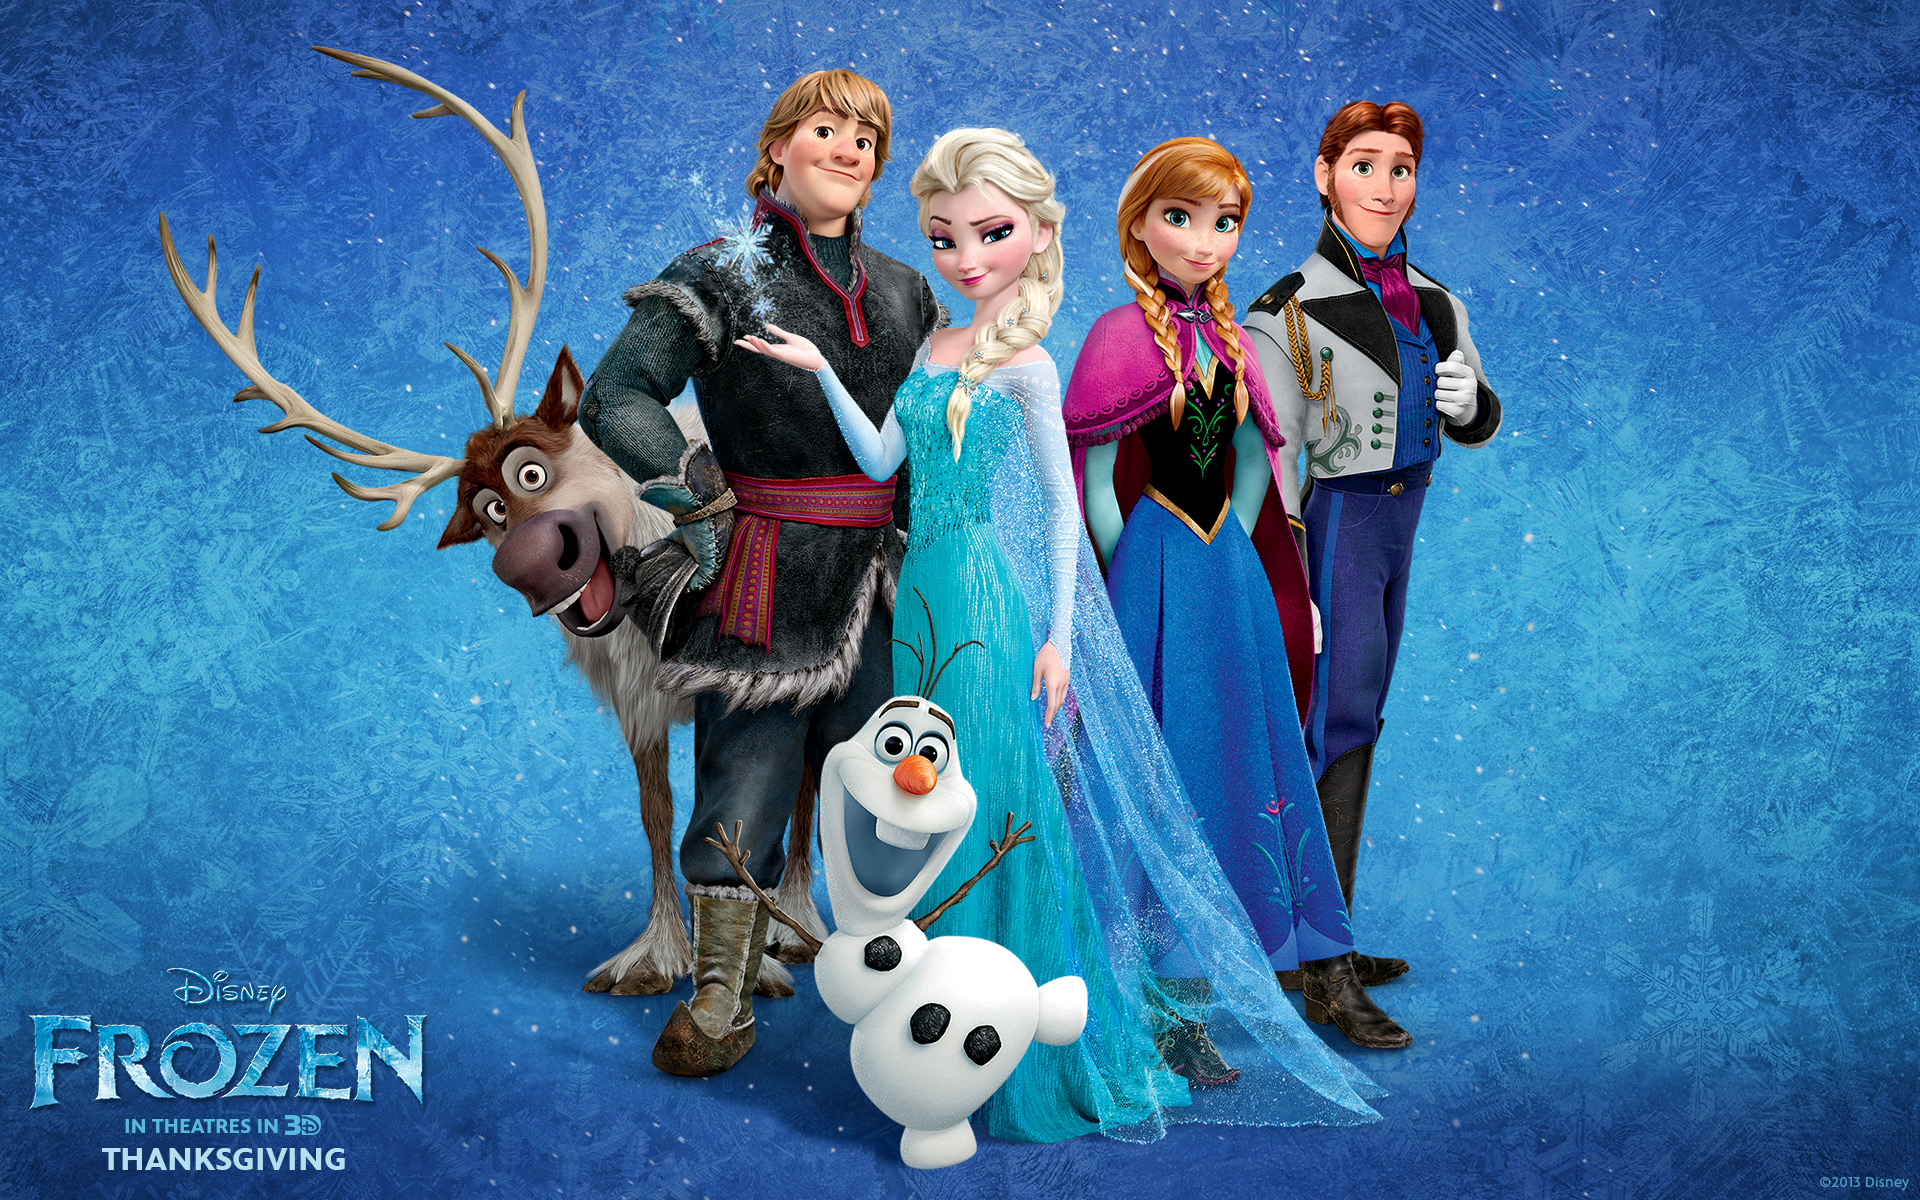 Frozen posters include Elsa, Annam Hans and Kristoff.